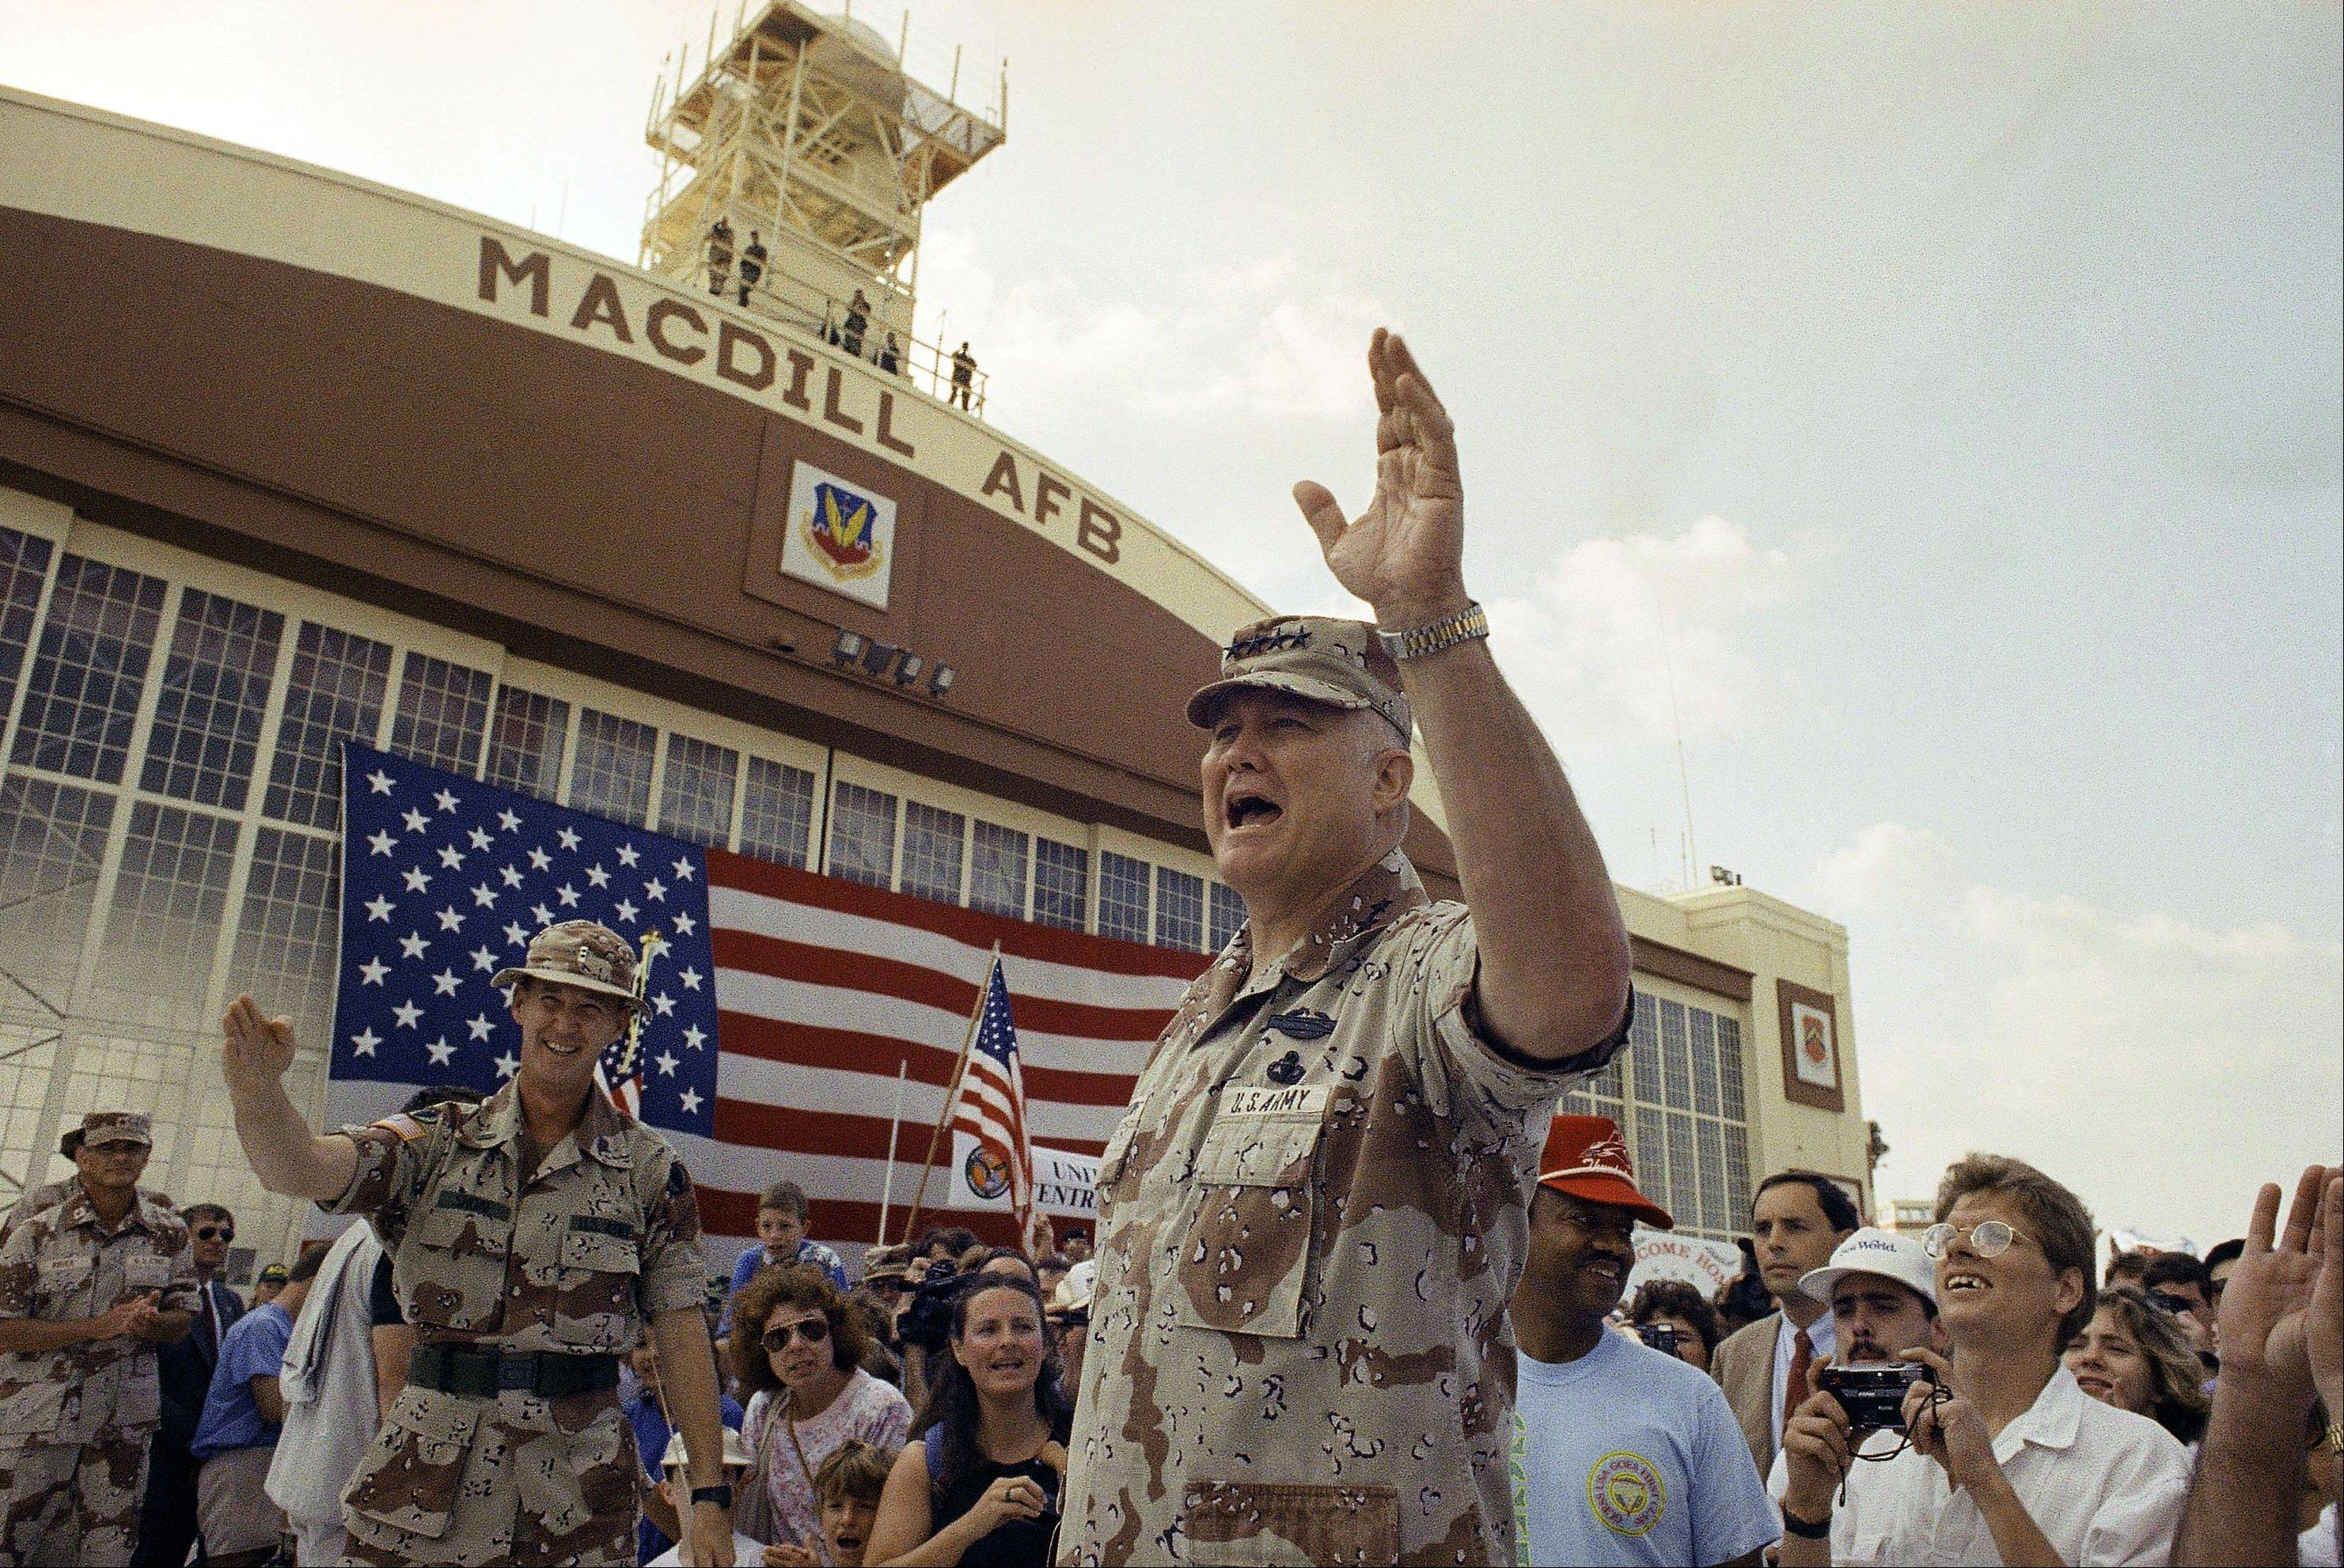 In this April 22, 1991, file photo, General H. Norman Schwarzkopf waves to the crowd after a military band played a song in his honor at welcome home ceremonies at MacDill Air Force Base in Tampa, Fla. Schwarzkopf died Thursday, Dec. 27, 2012 in Tampa, Fla. He was 78.